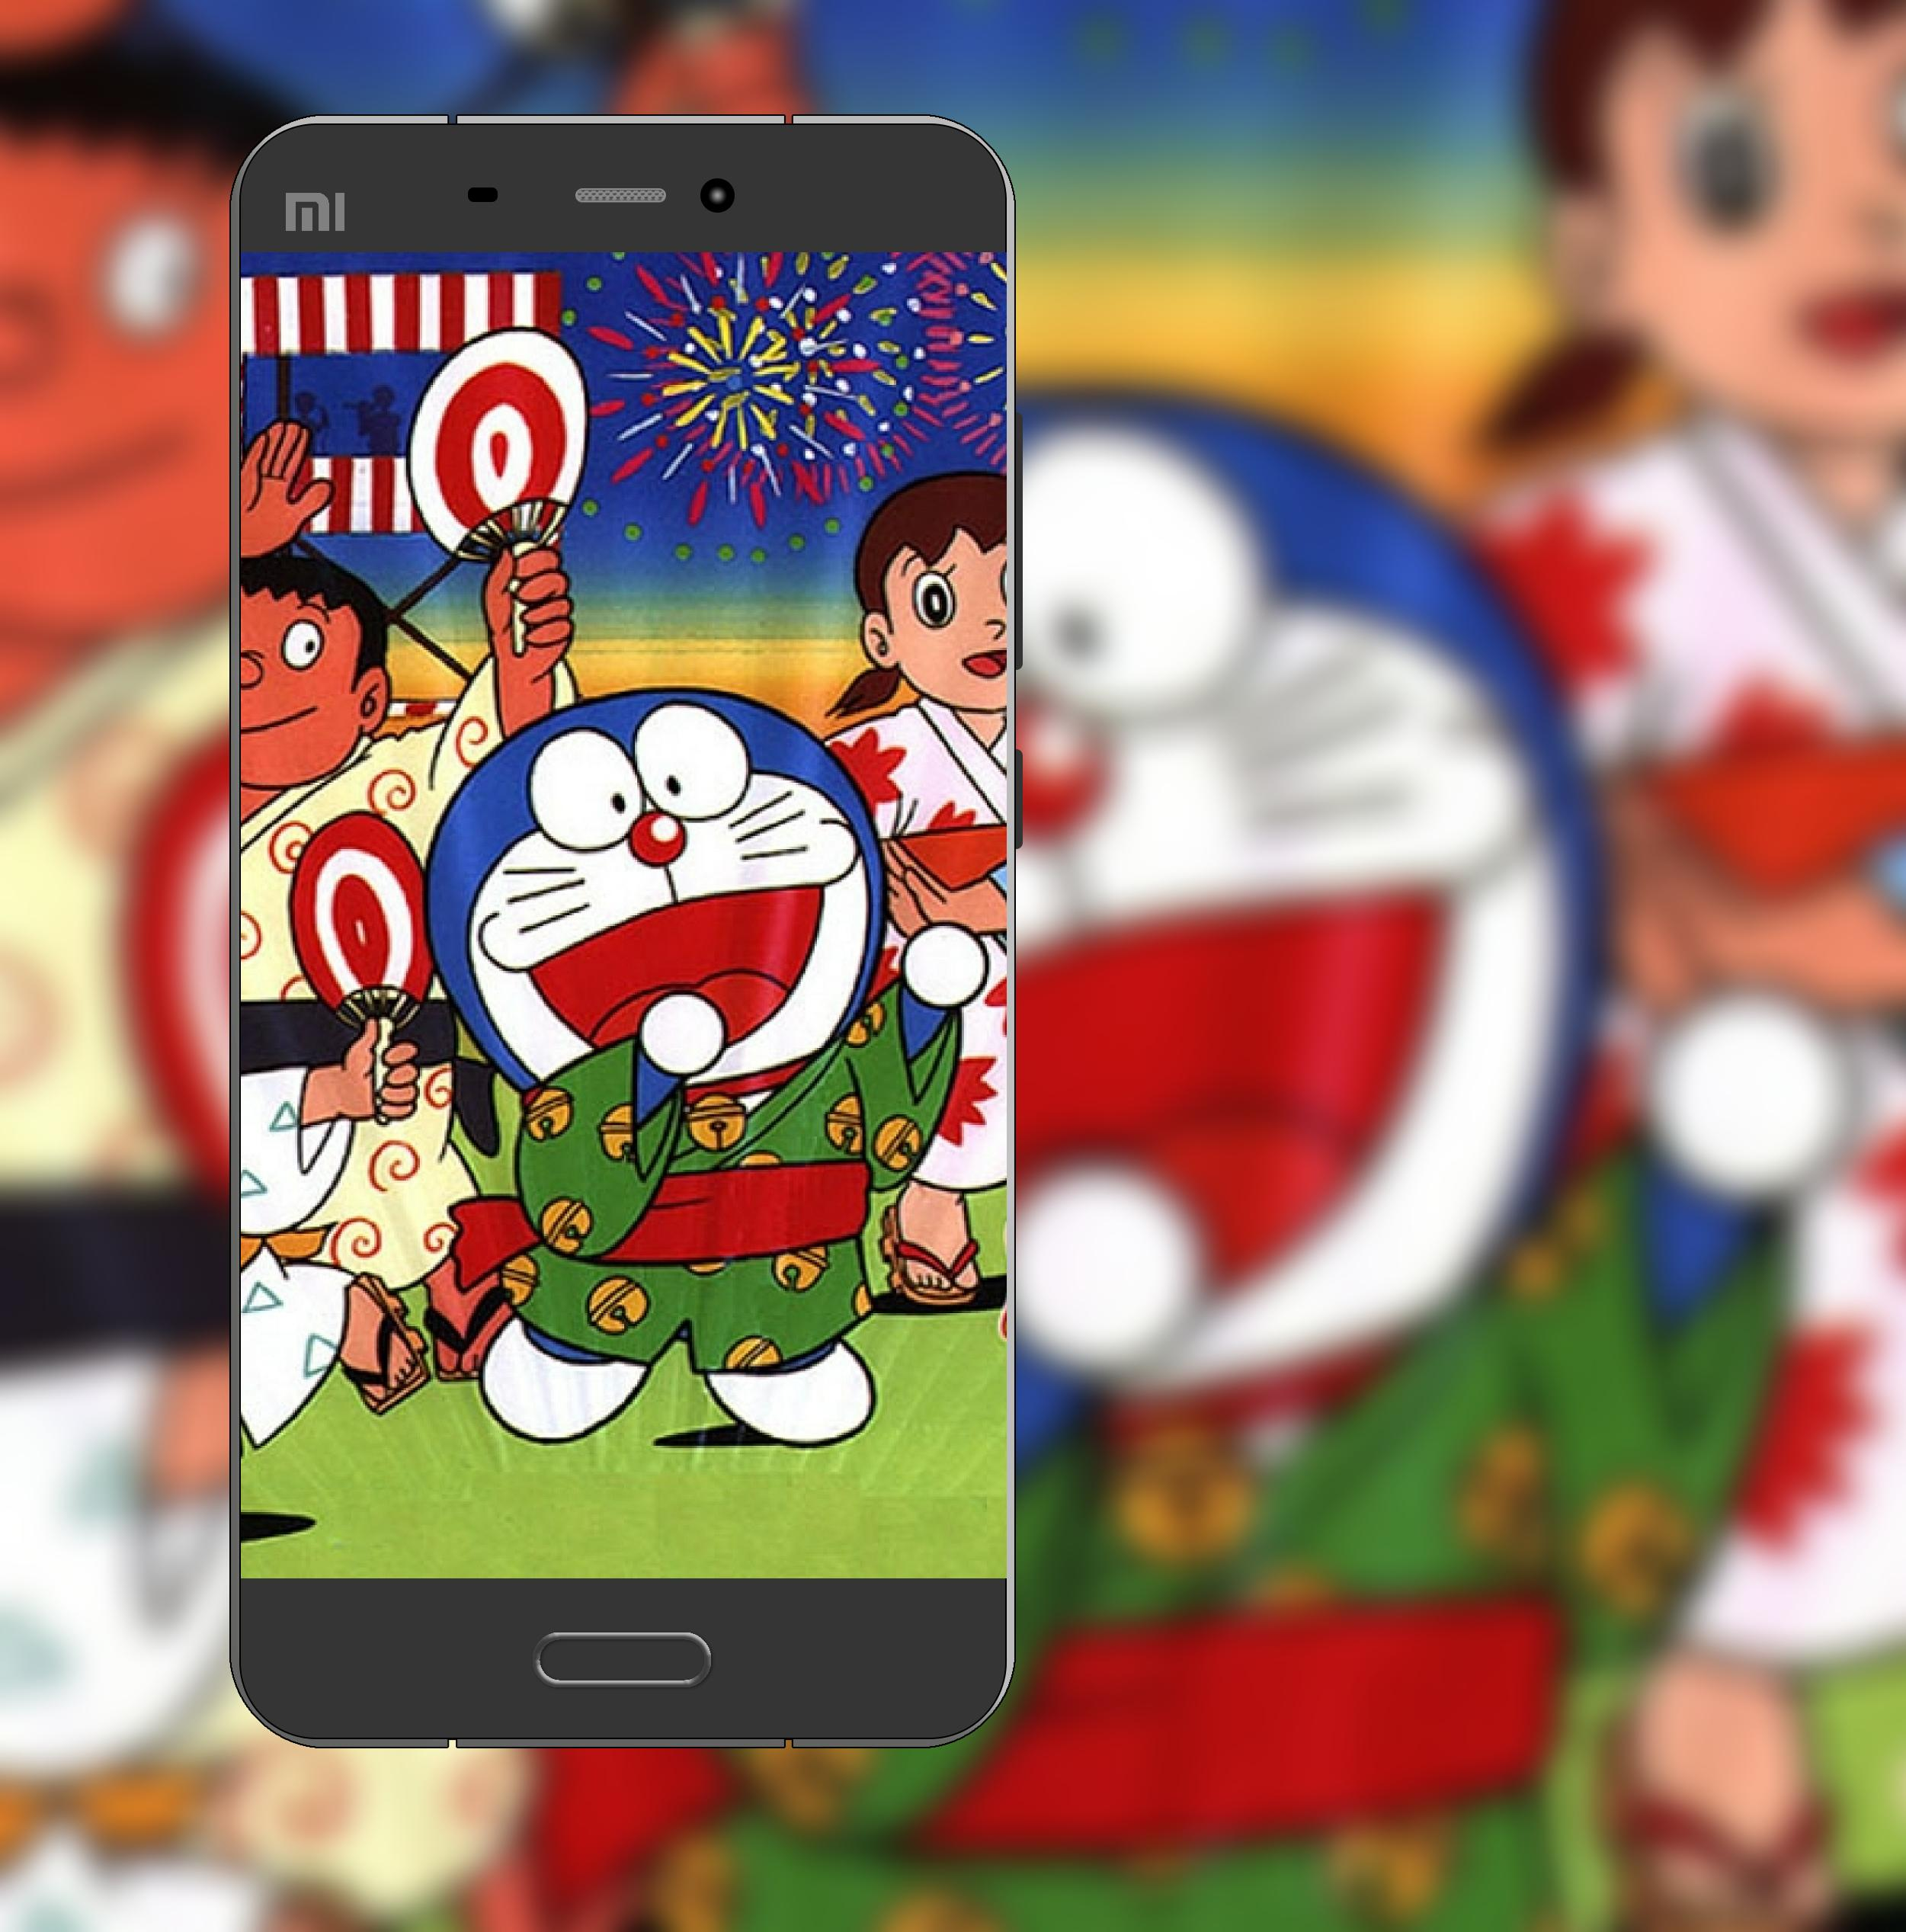 920 Wallpaper Hd Hp Android Apk Terbaru